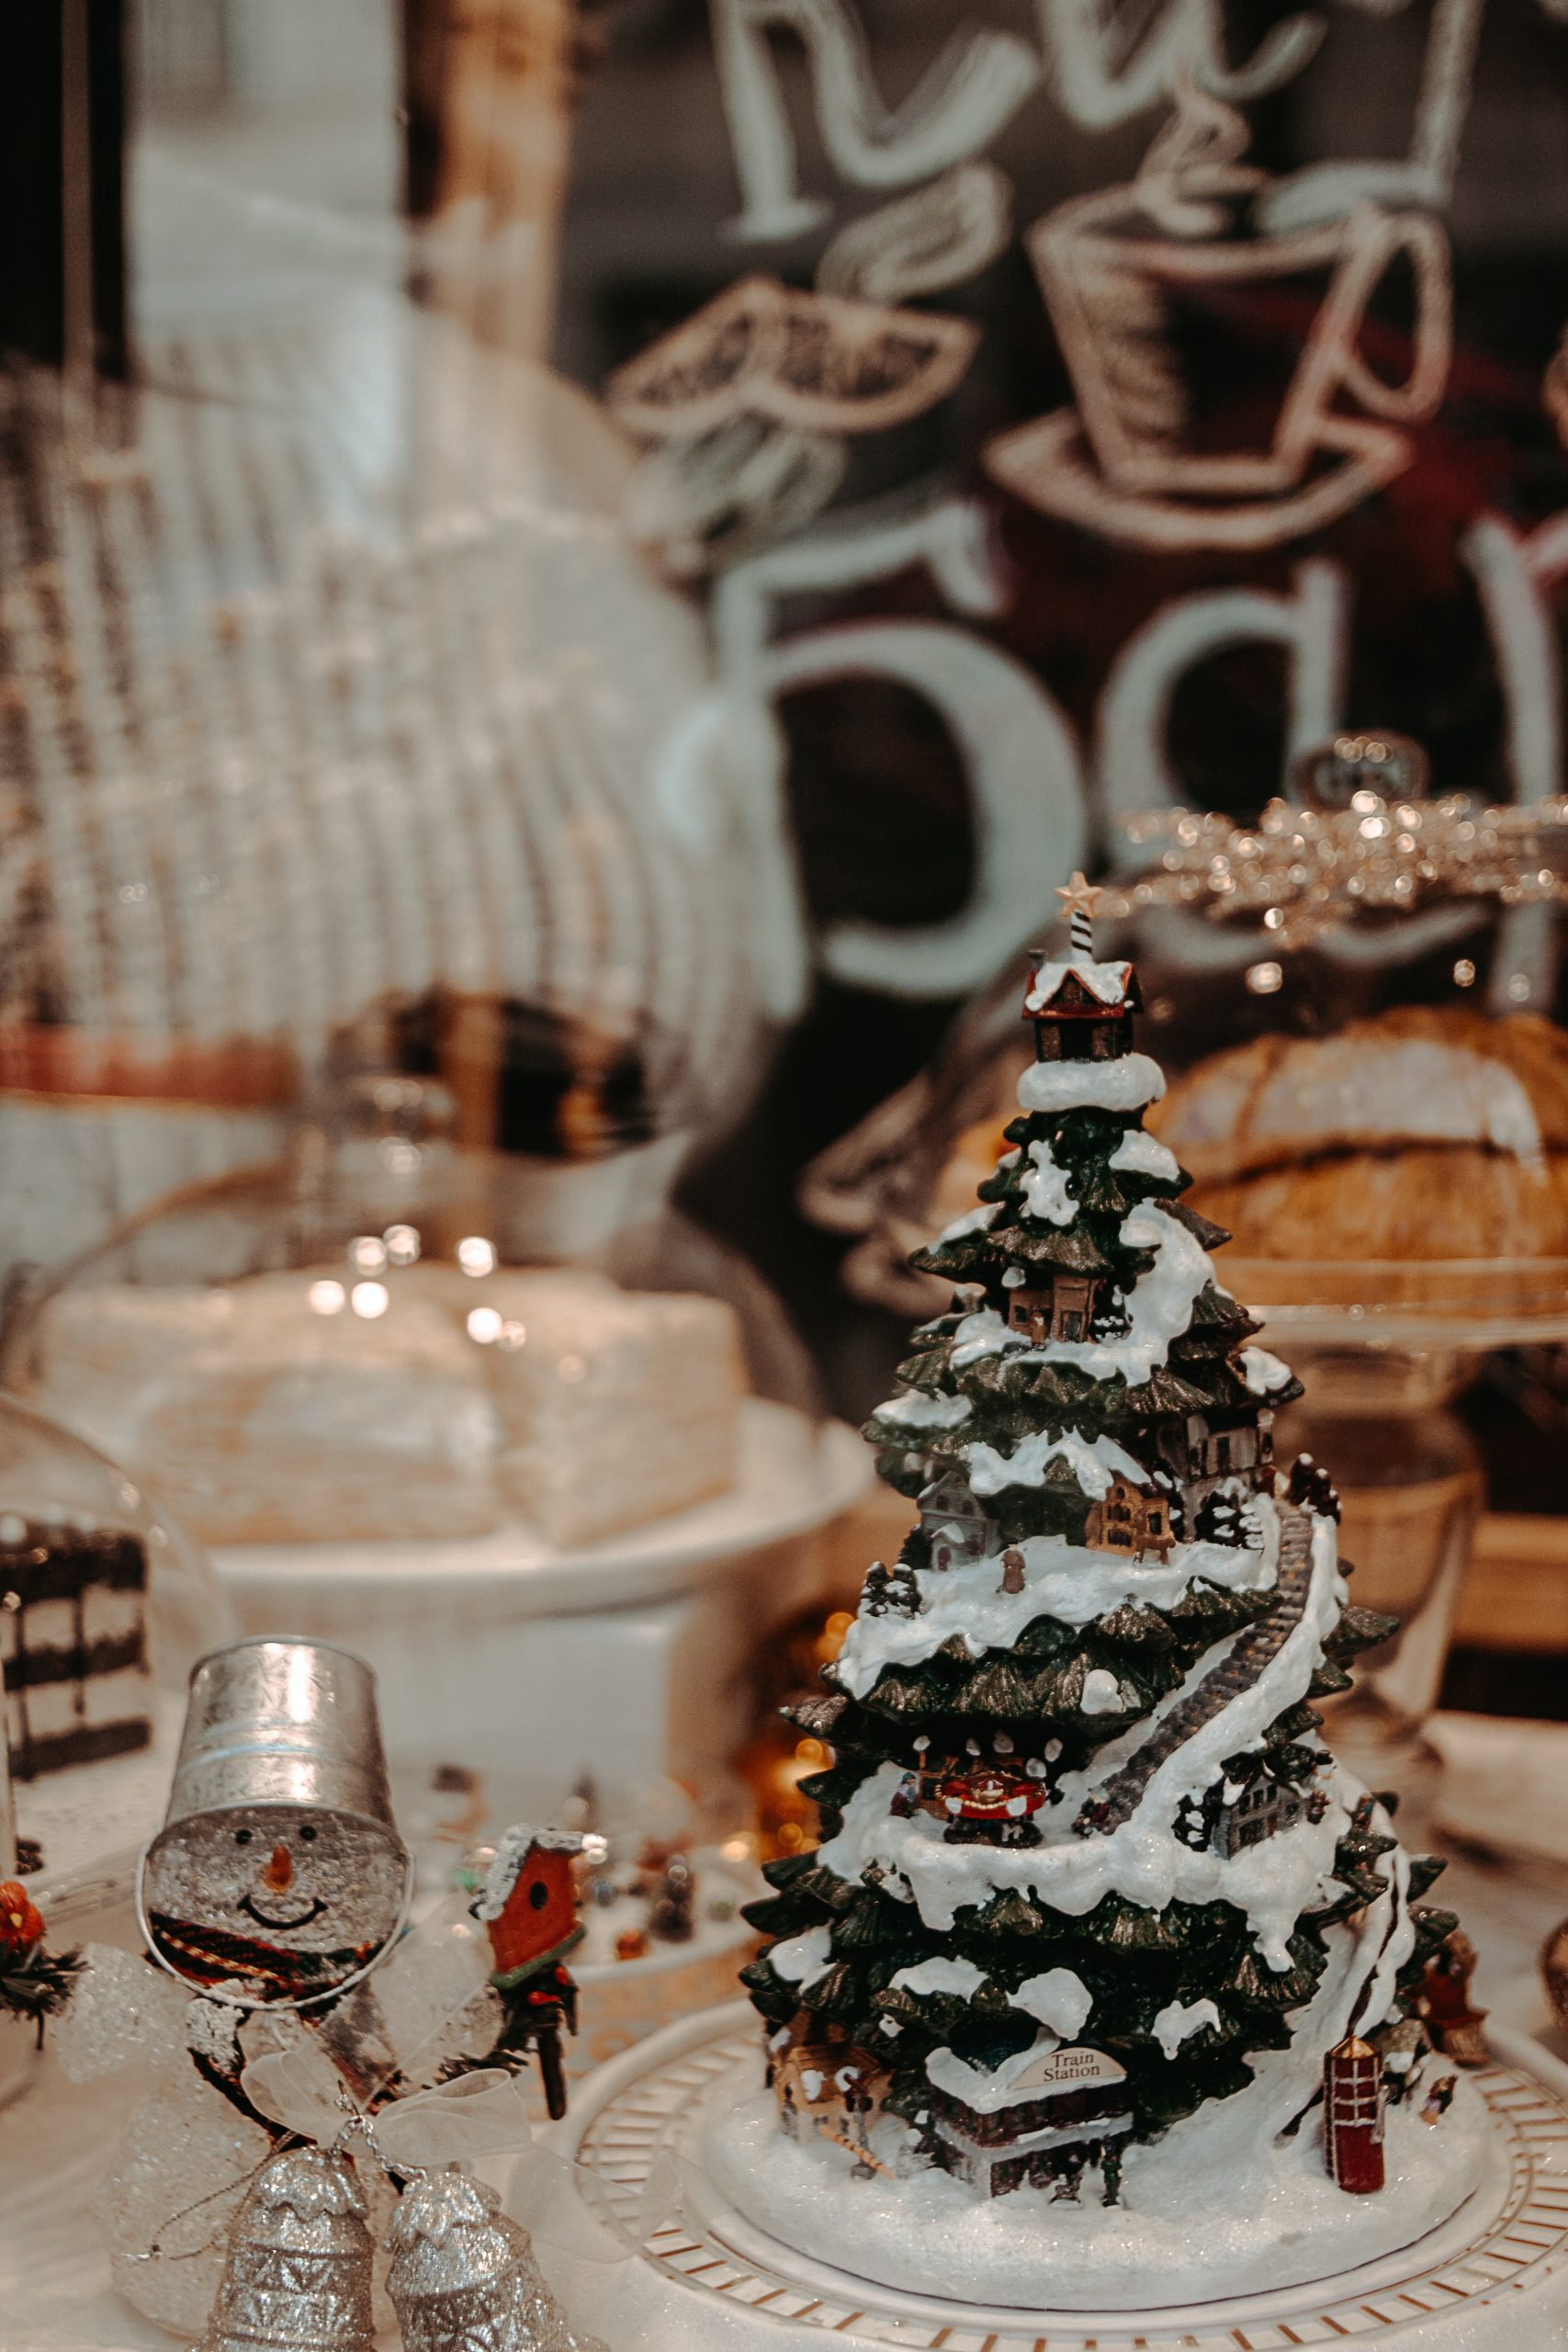 A miniature Christmas tree surrounded by other Christmas-themed ornamentation at a winter wedding